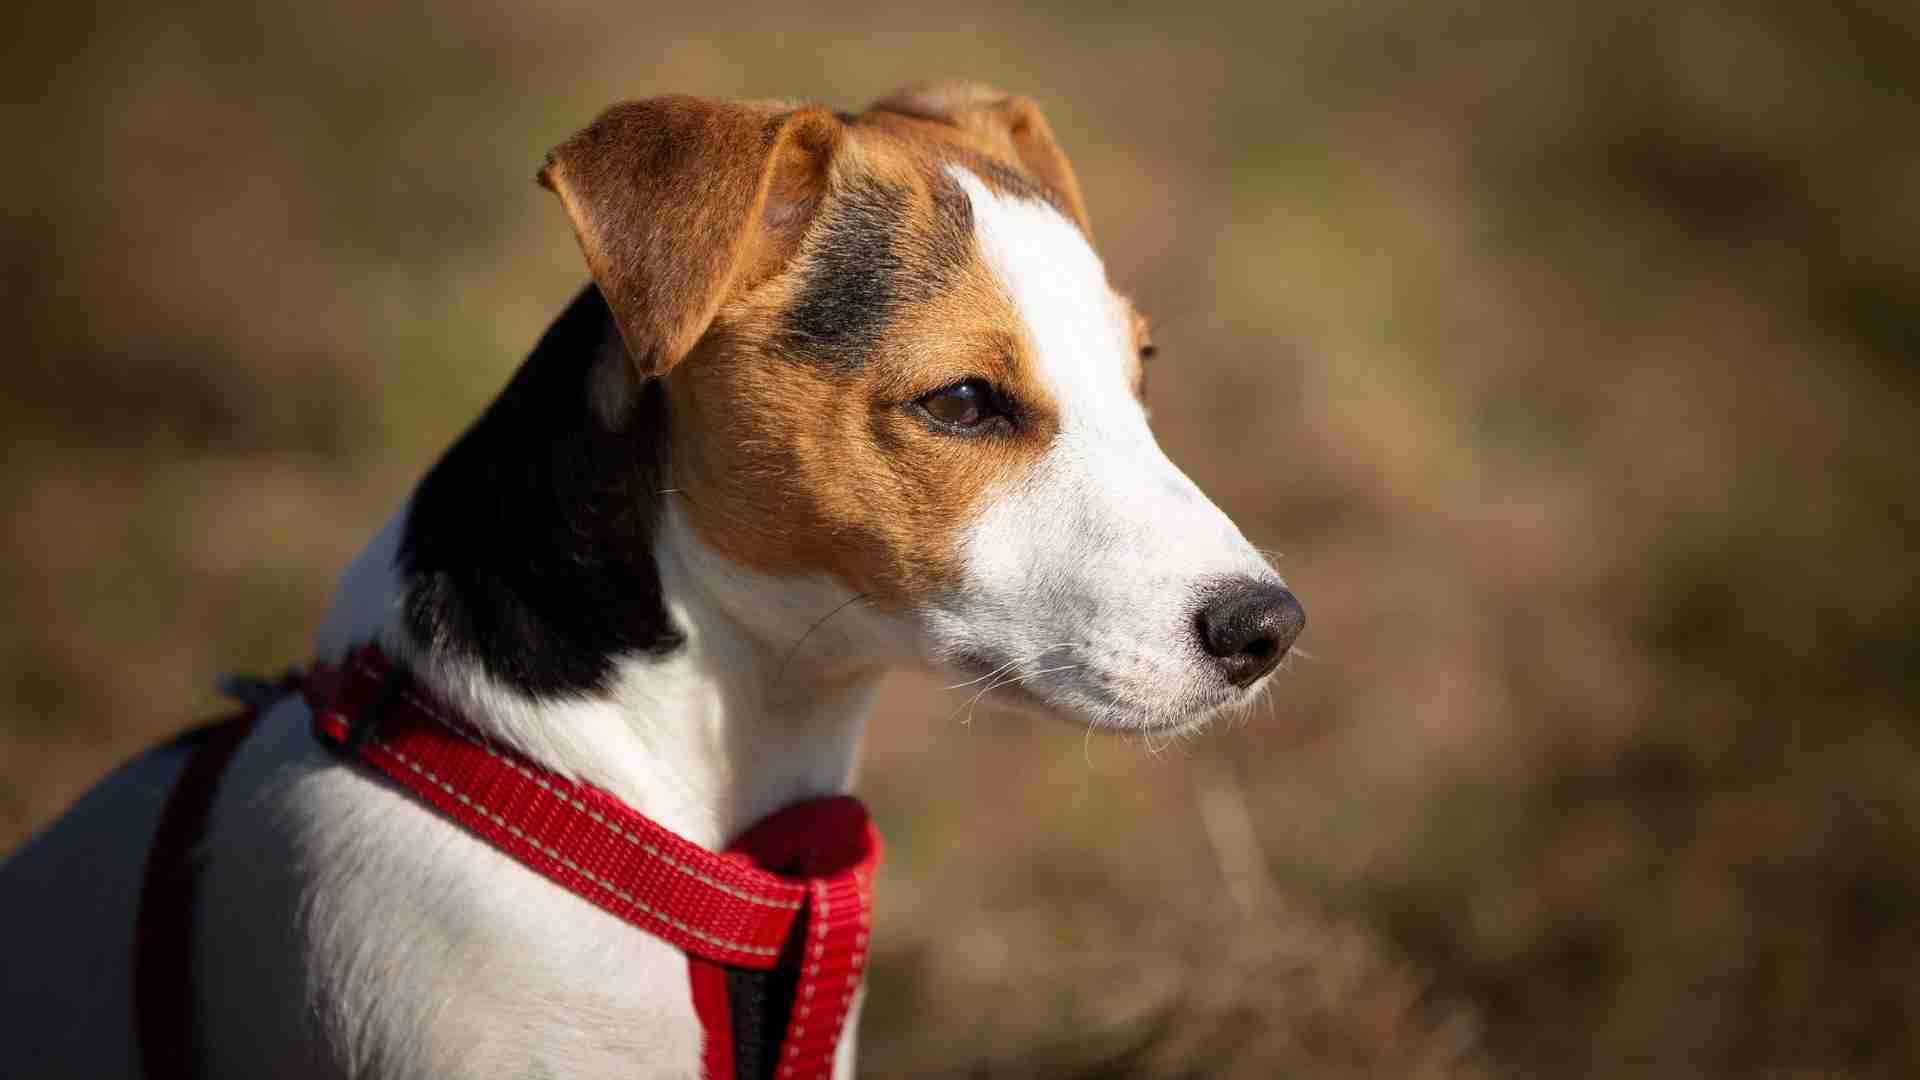 Best No Pull Dog Harnesses Of 2021: Reviews & Buyer's Guide